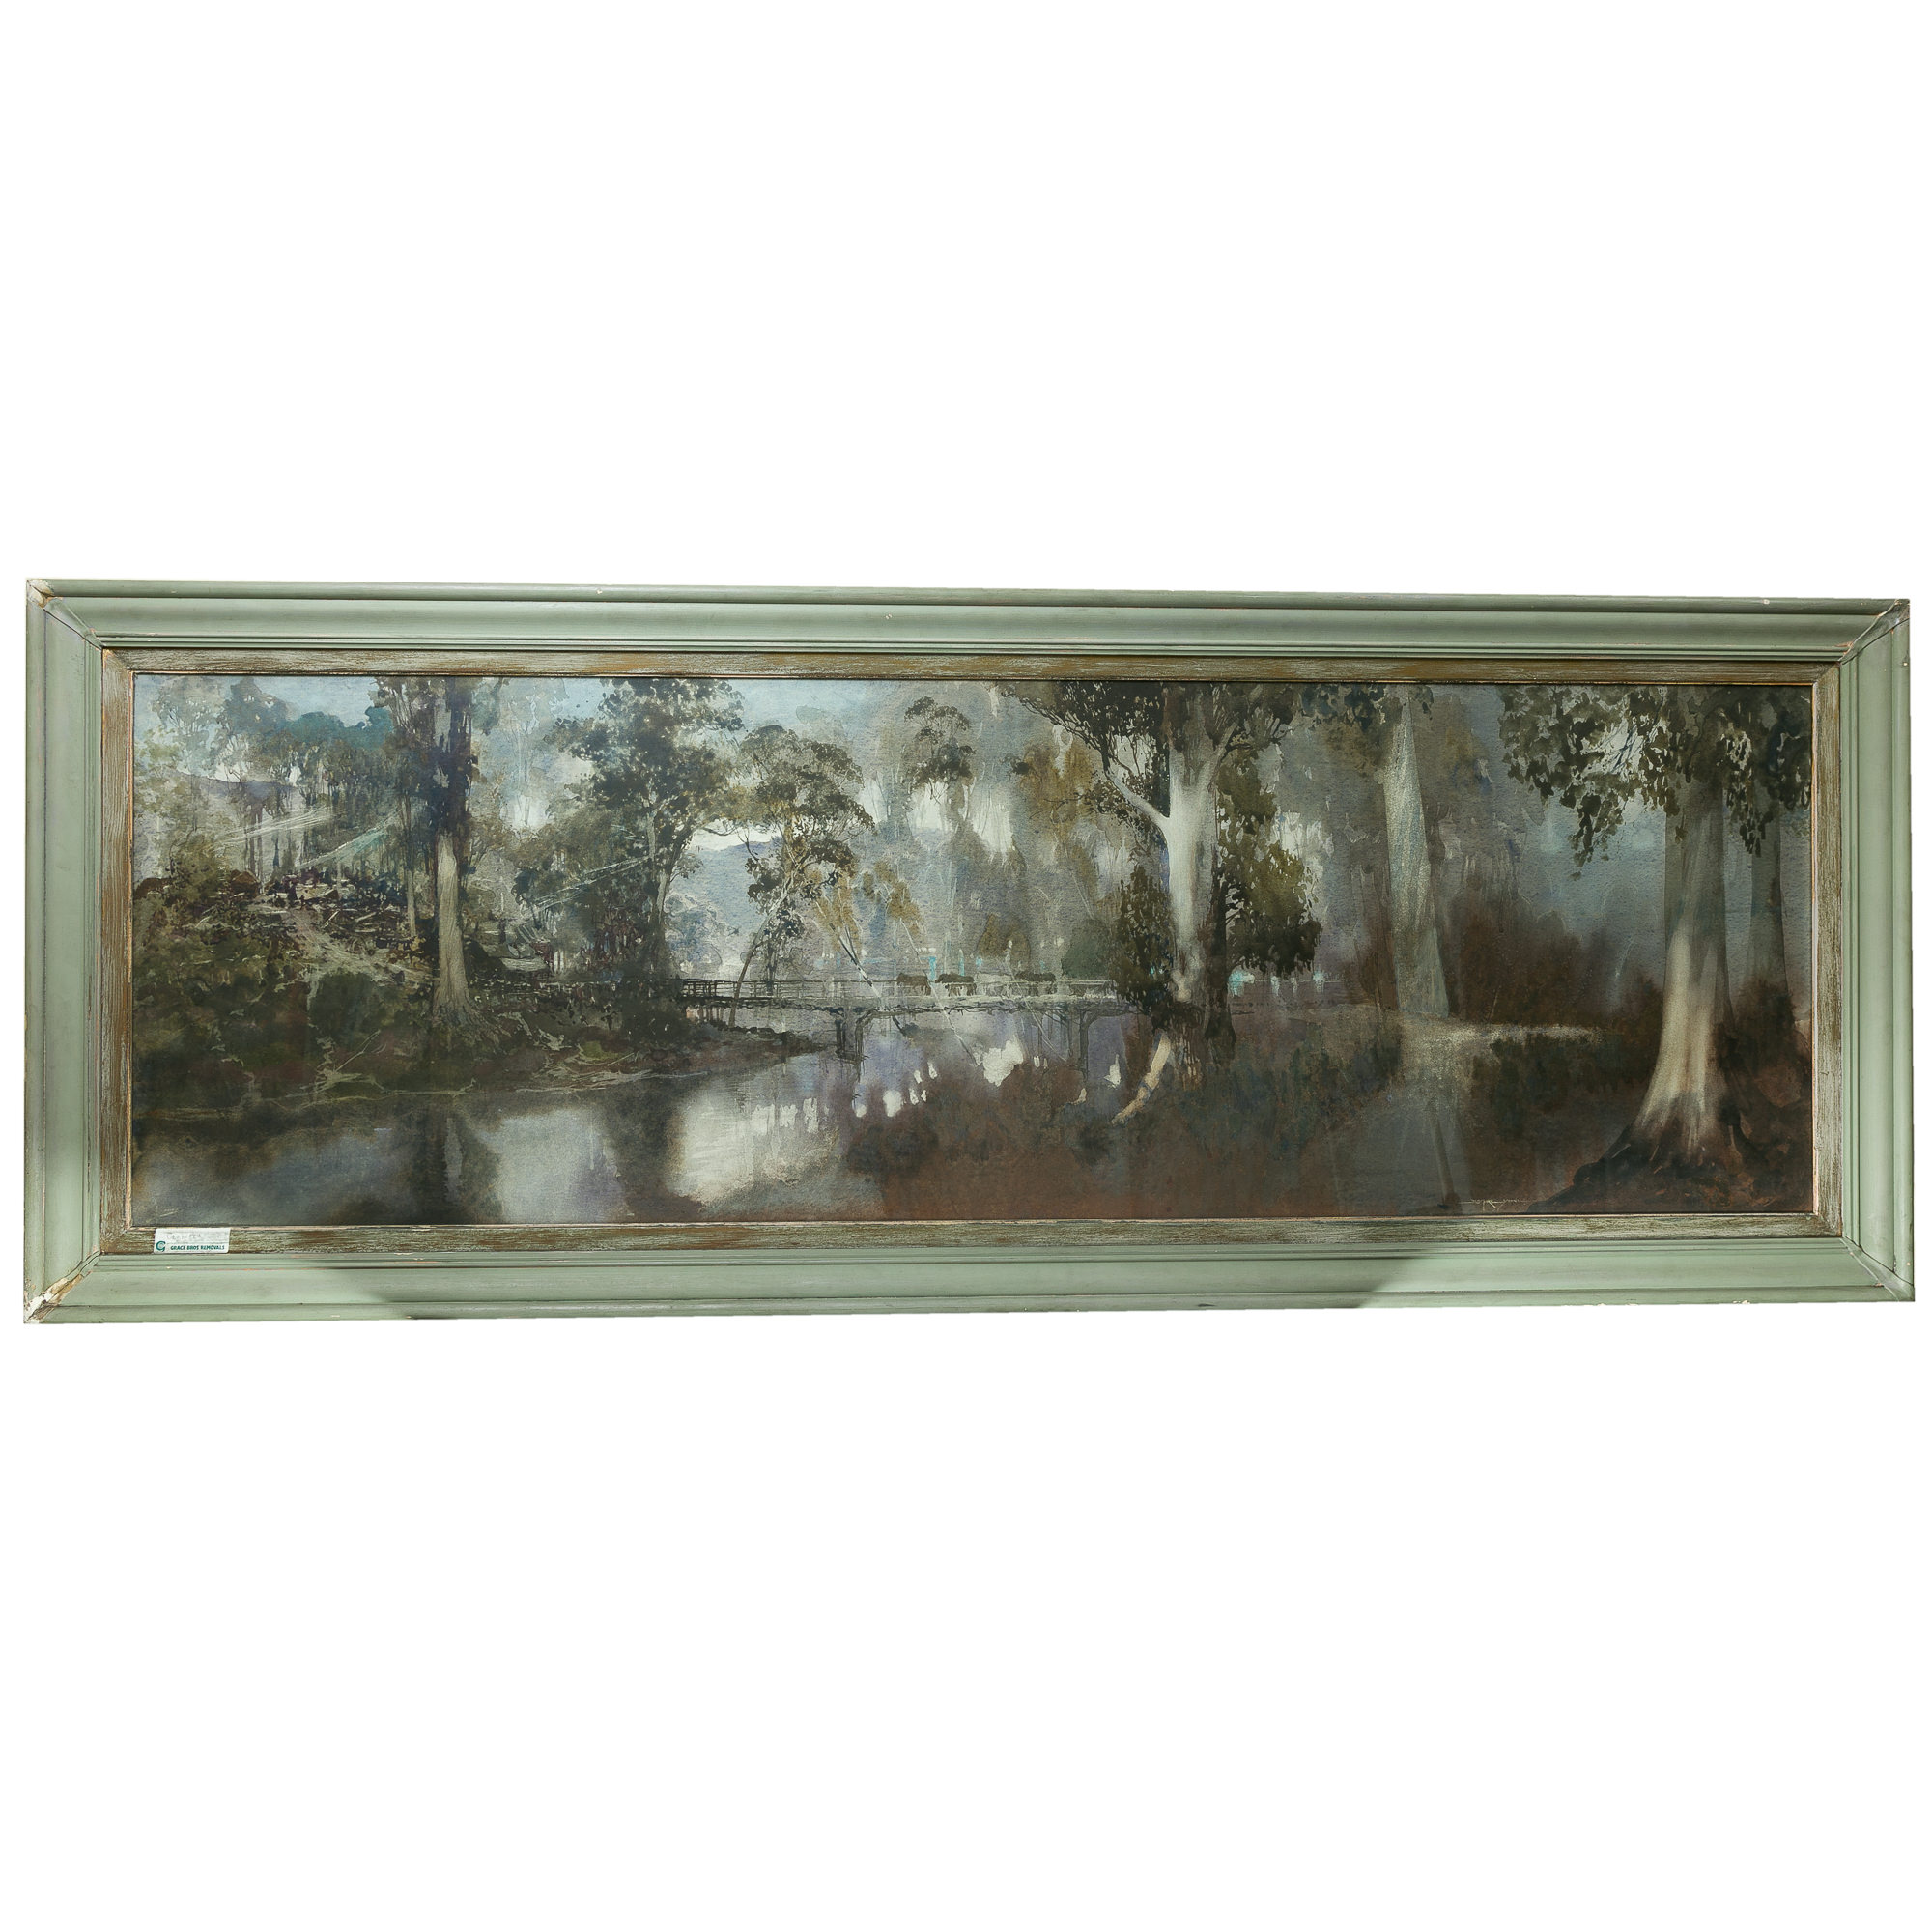 'Blamire W Young (1862-1935) Draft Horses Among the River Gums Watercolour, Major Work'